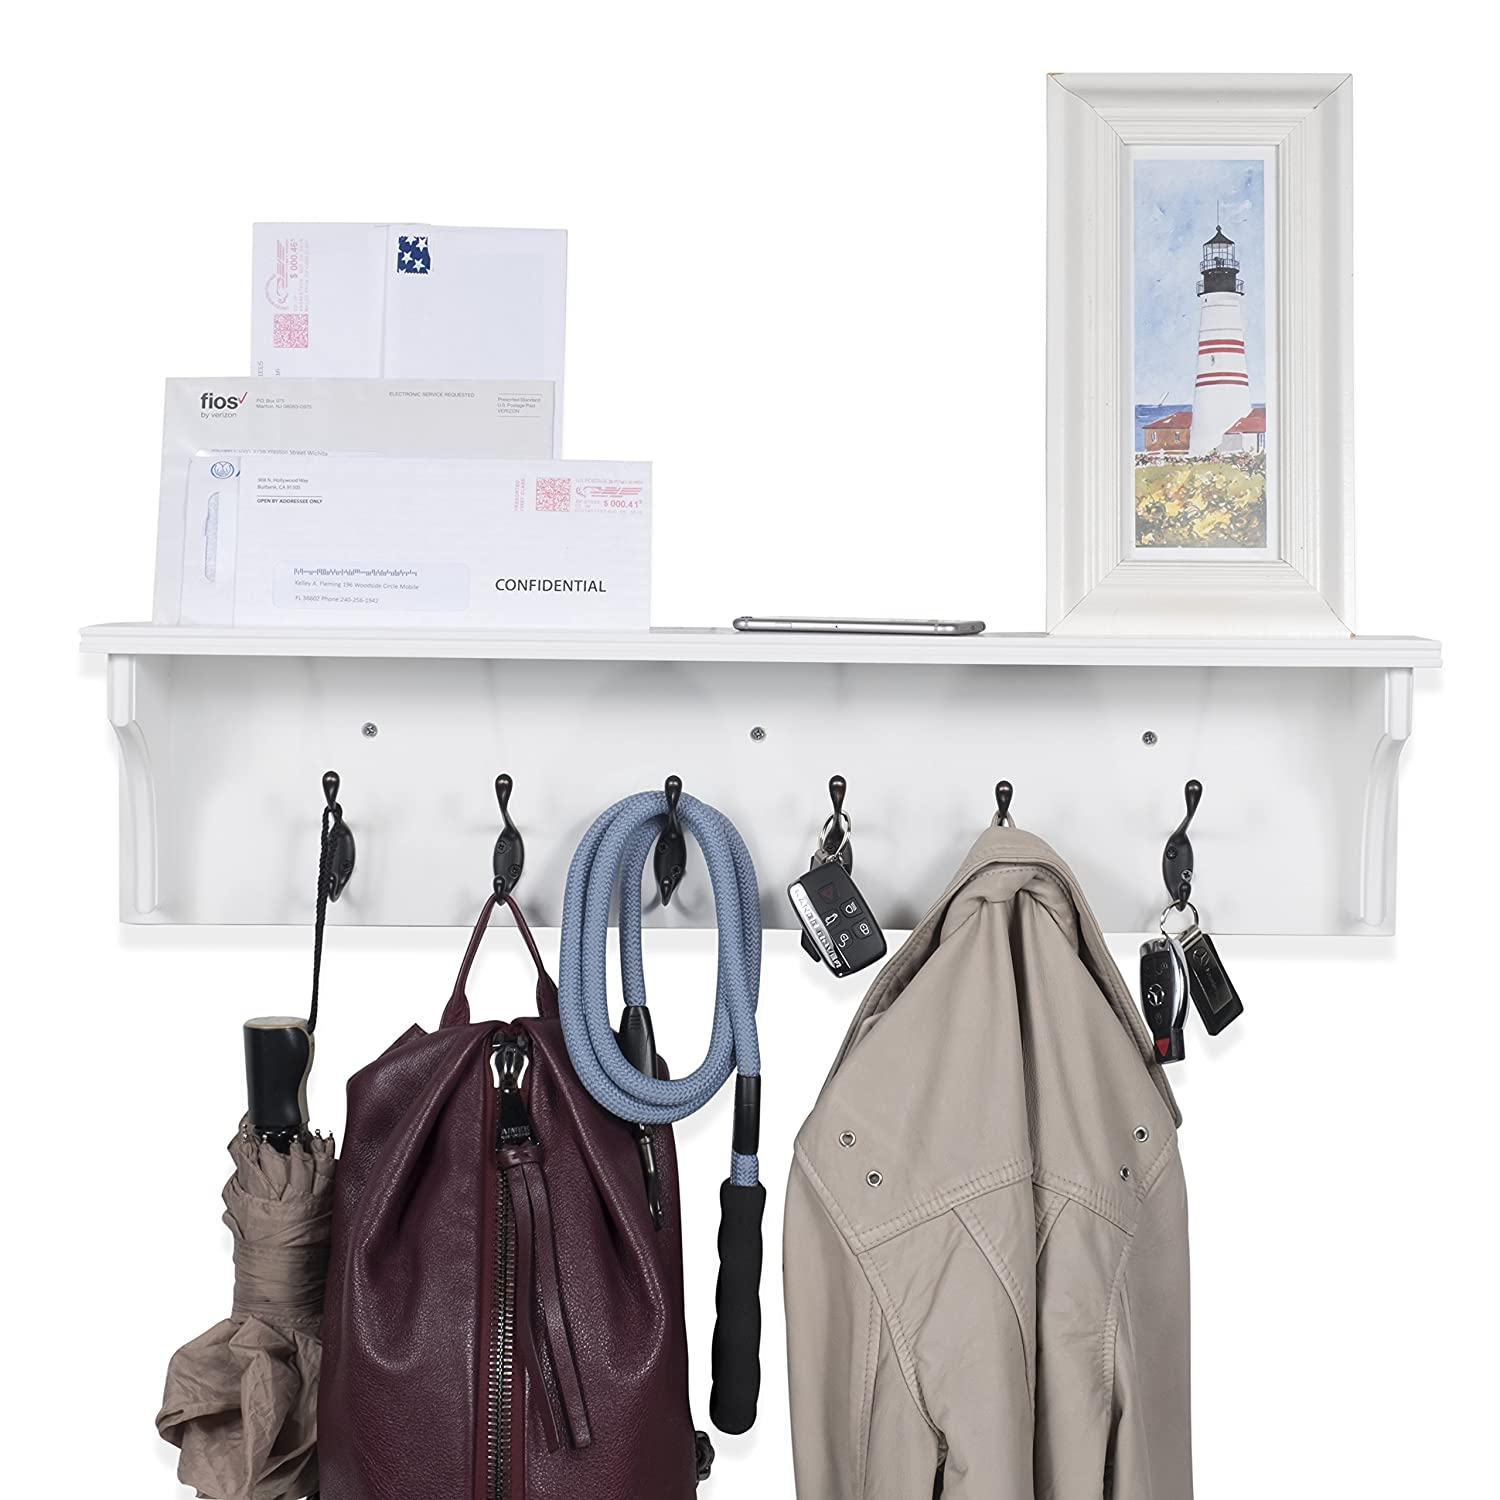 Solid Wood Entryway Organization Wall Mountable 30 Inch Coat Rack with 6 Hooks Walnut White